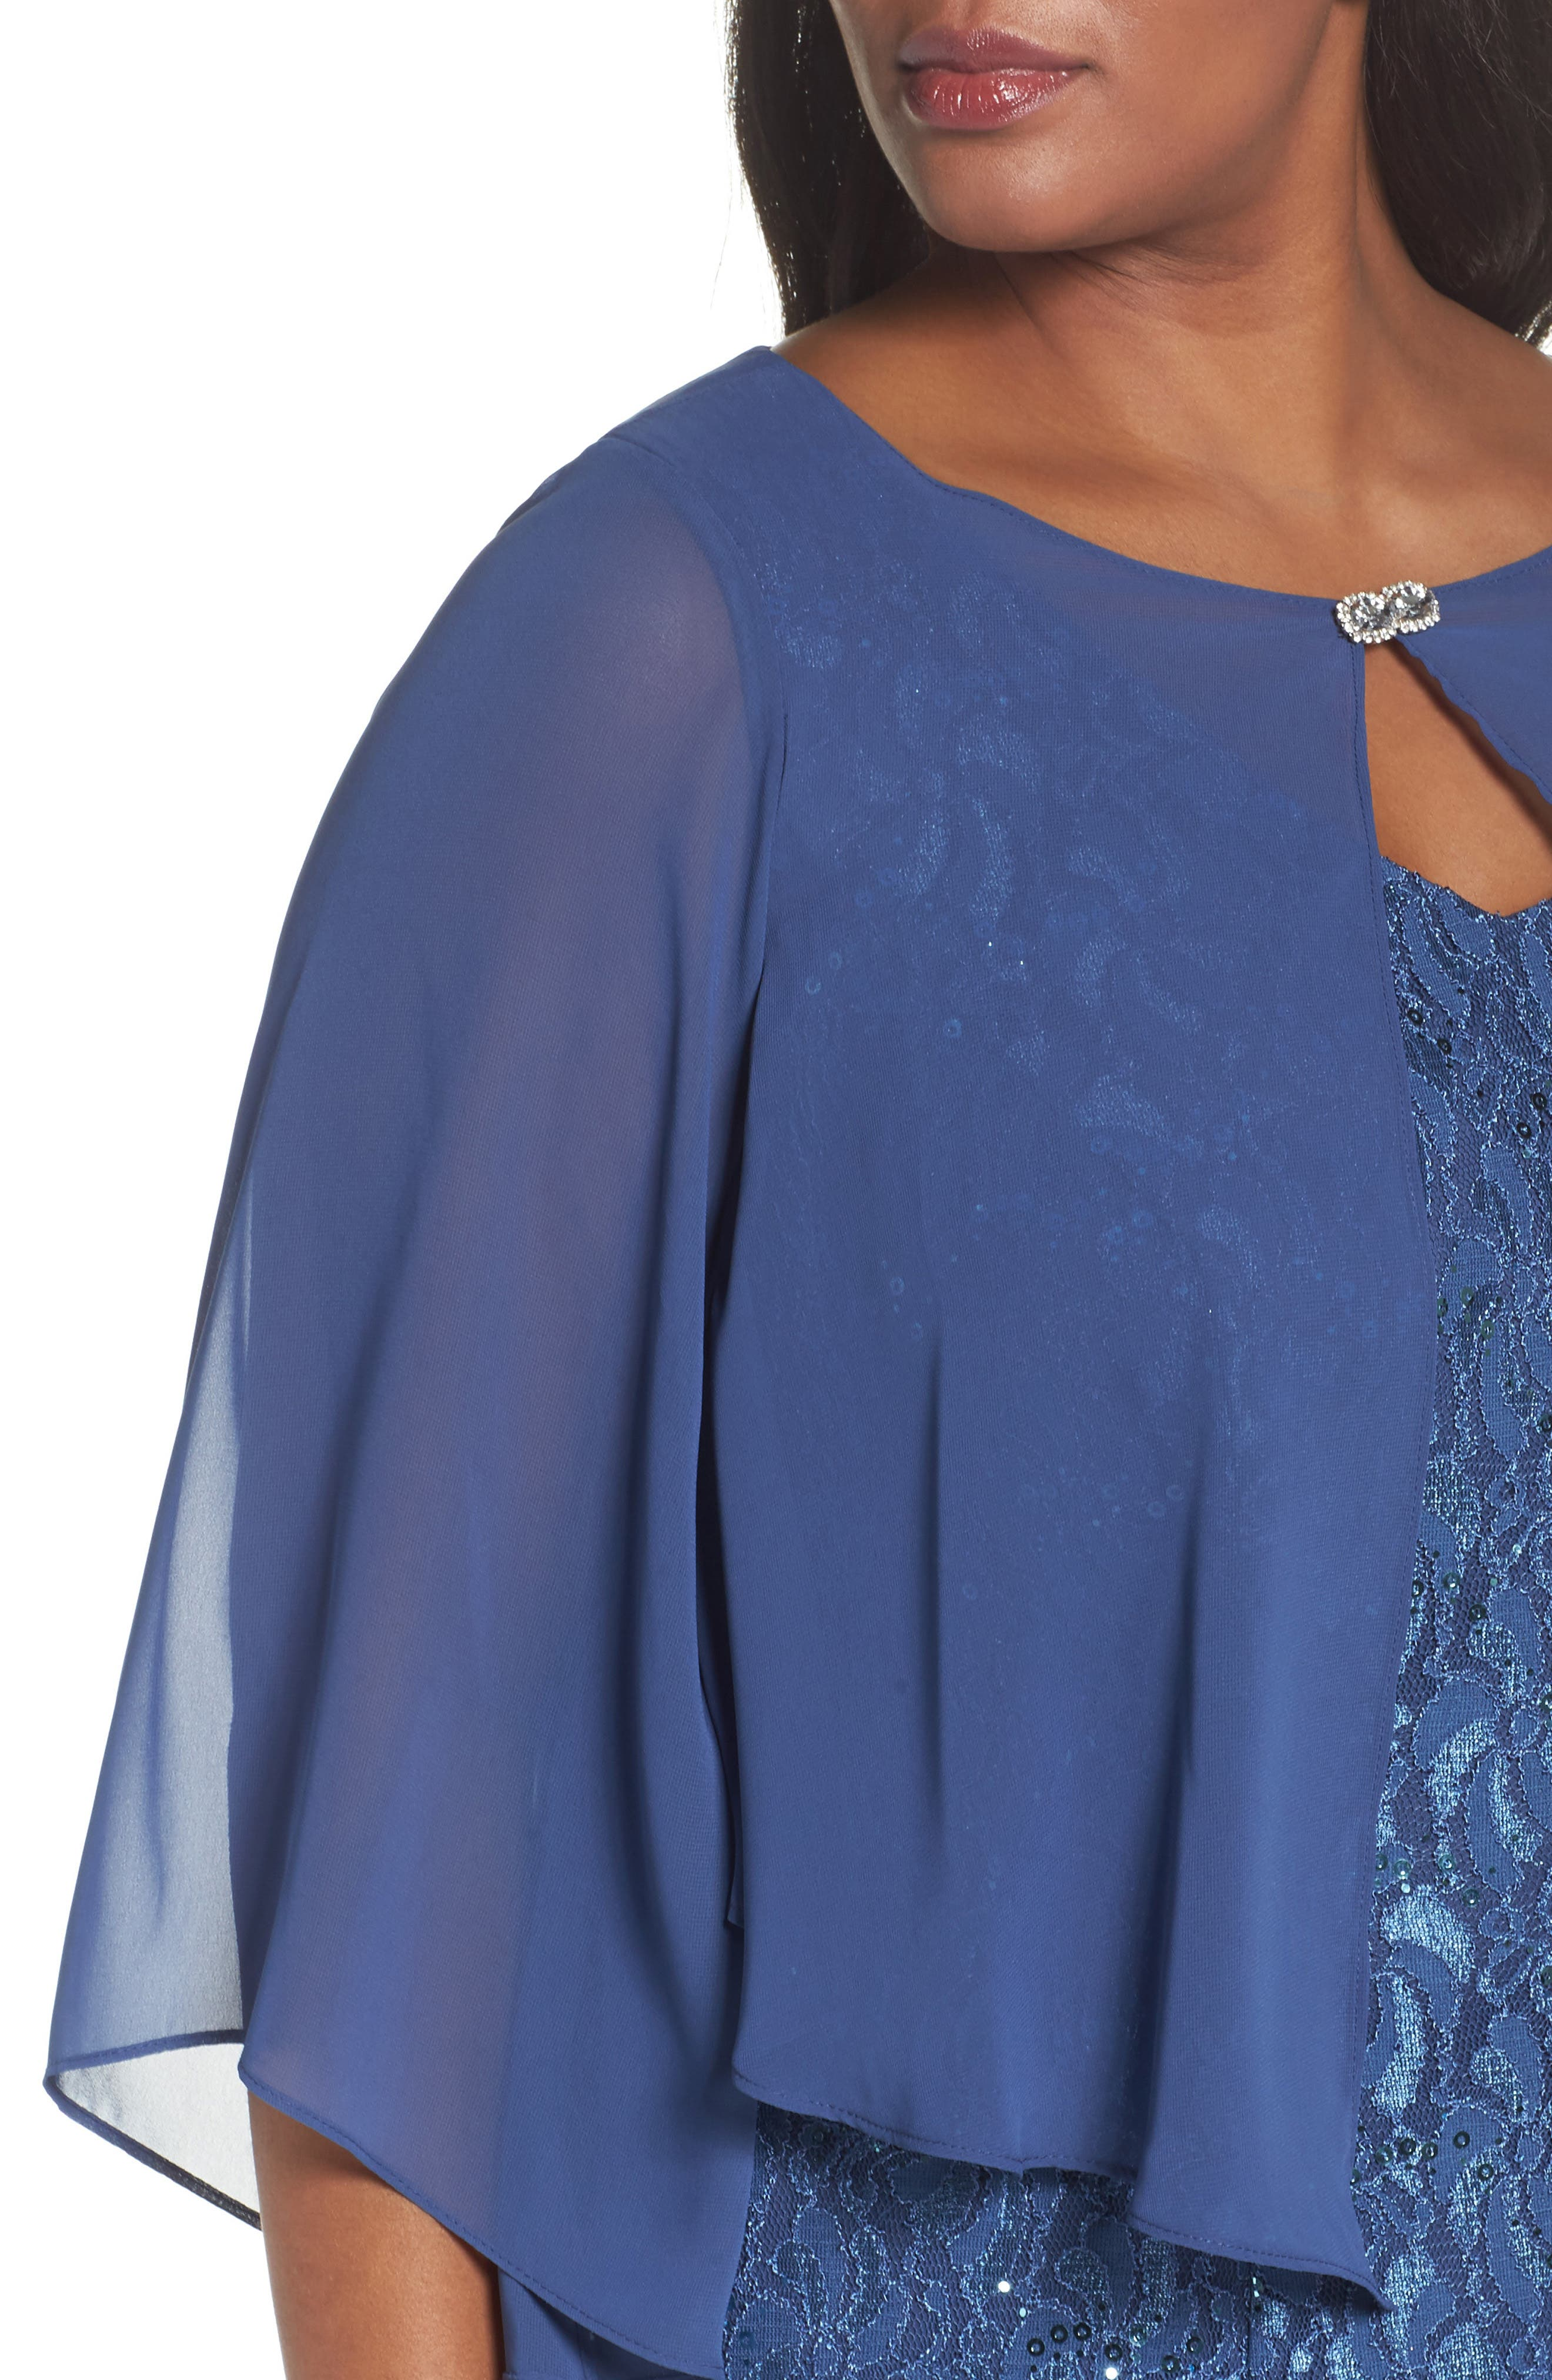 V-Neck Lace Gown with Capelet Overlay,                             Alternate thumbnail 4, color,                             422